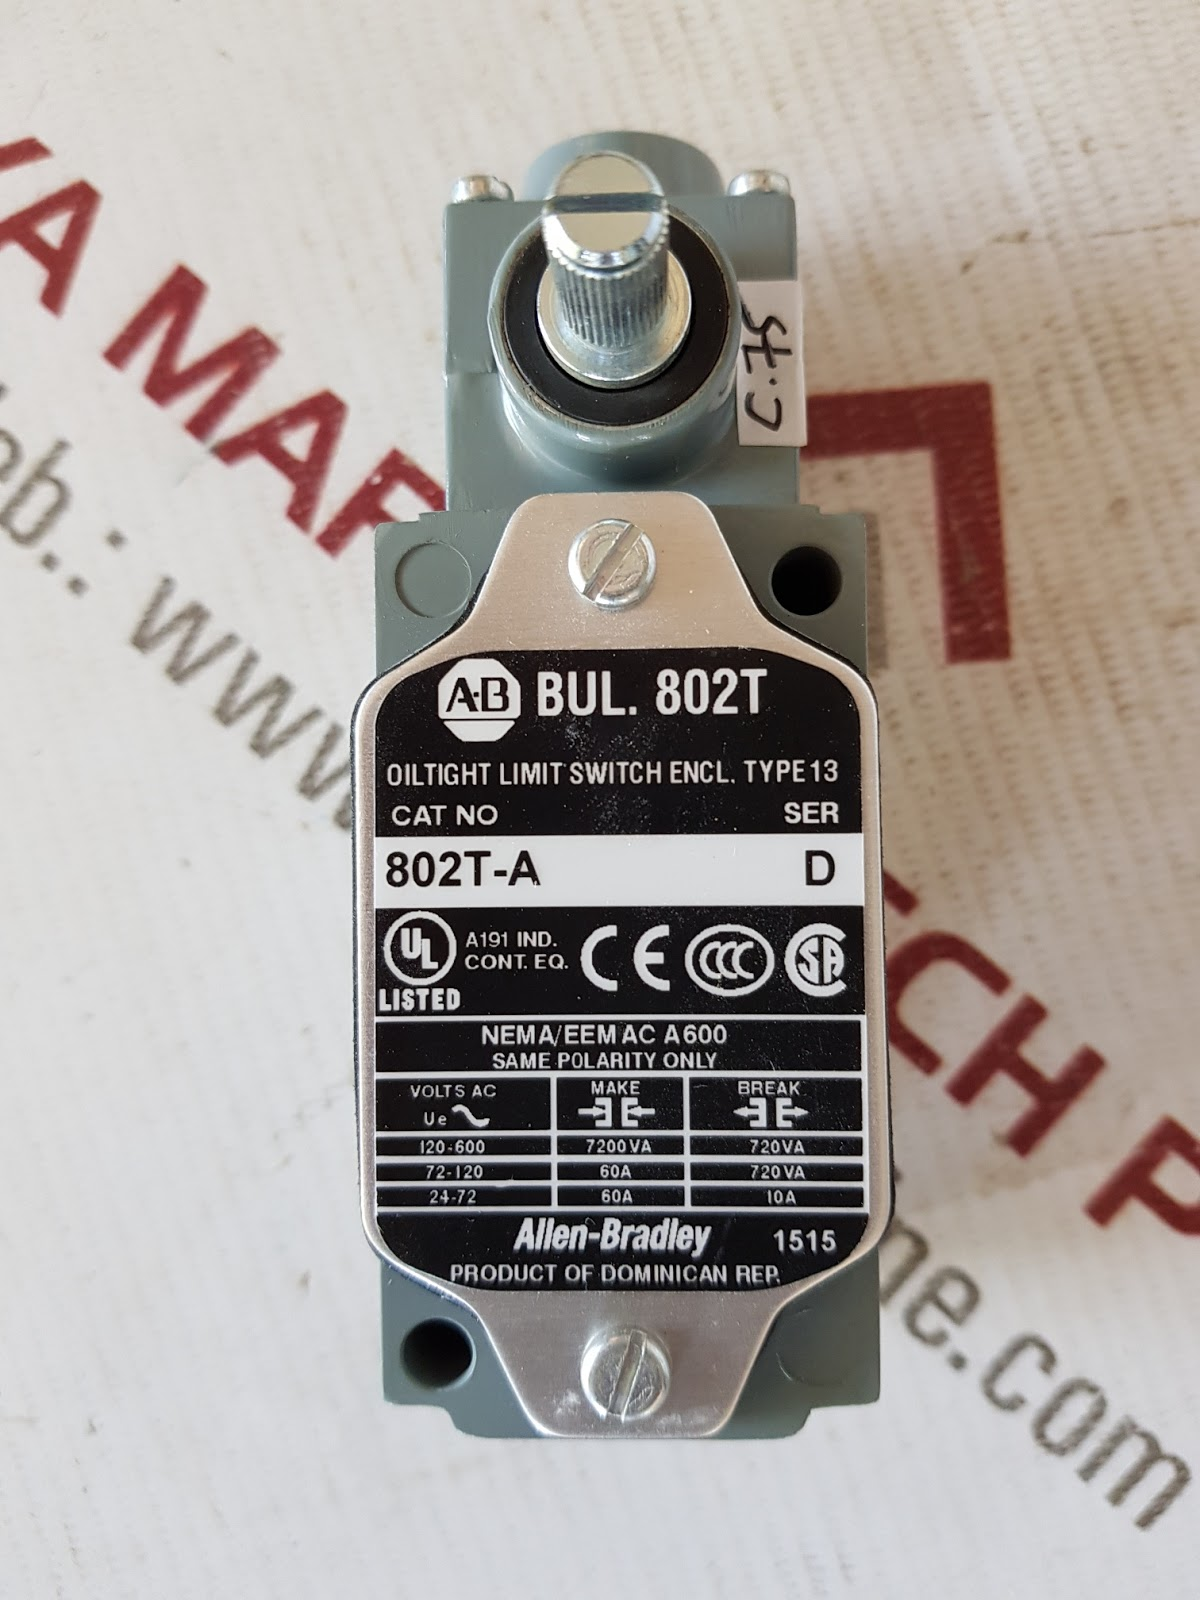 medium resolution of a b bul 802t limit switch with operator and roller arm type 13 802t a nema eem ac a 600 a191 a173a 1515 acct 7254000 condition new 1 pcs